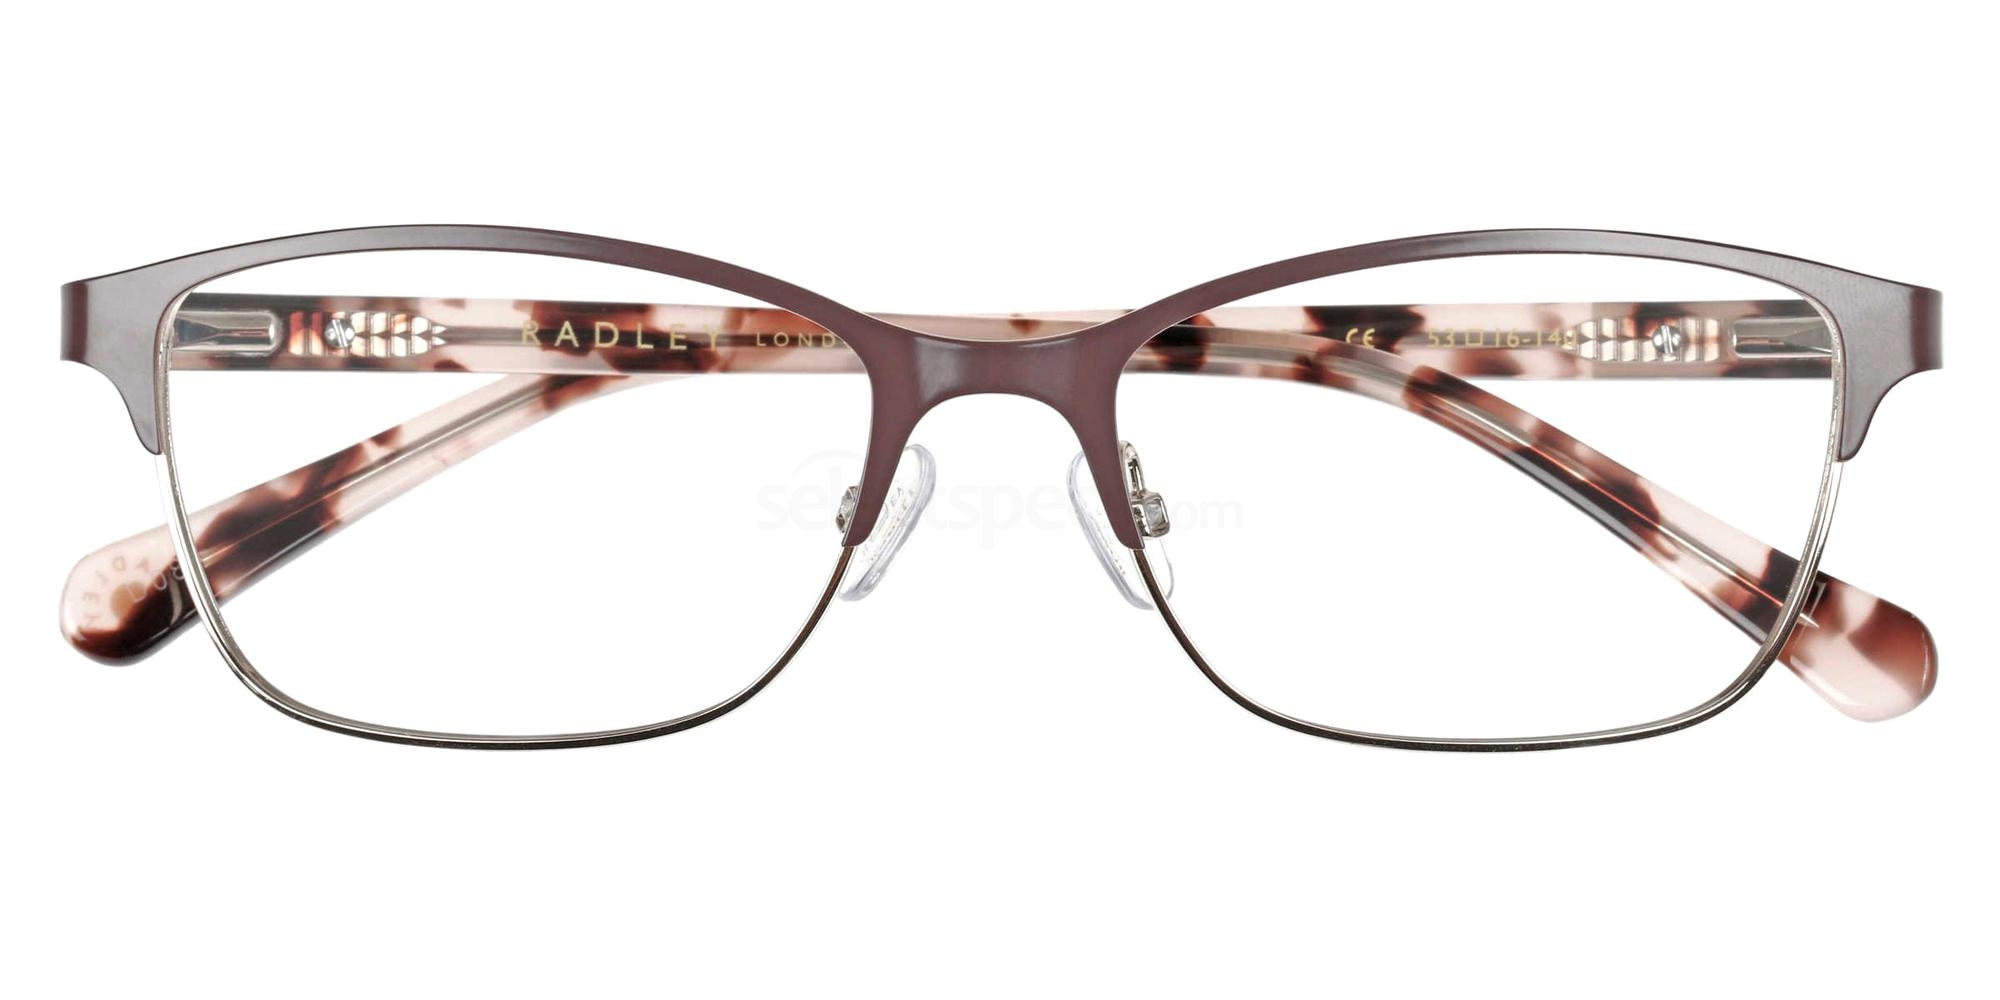 003 RDO-HAZEL Glasses, Radley London